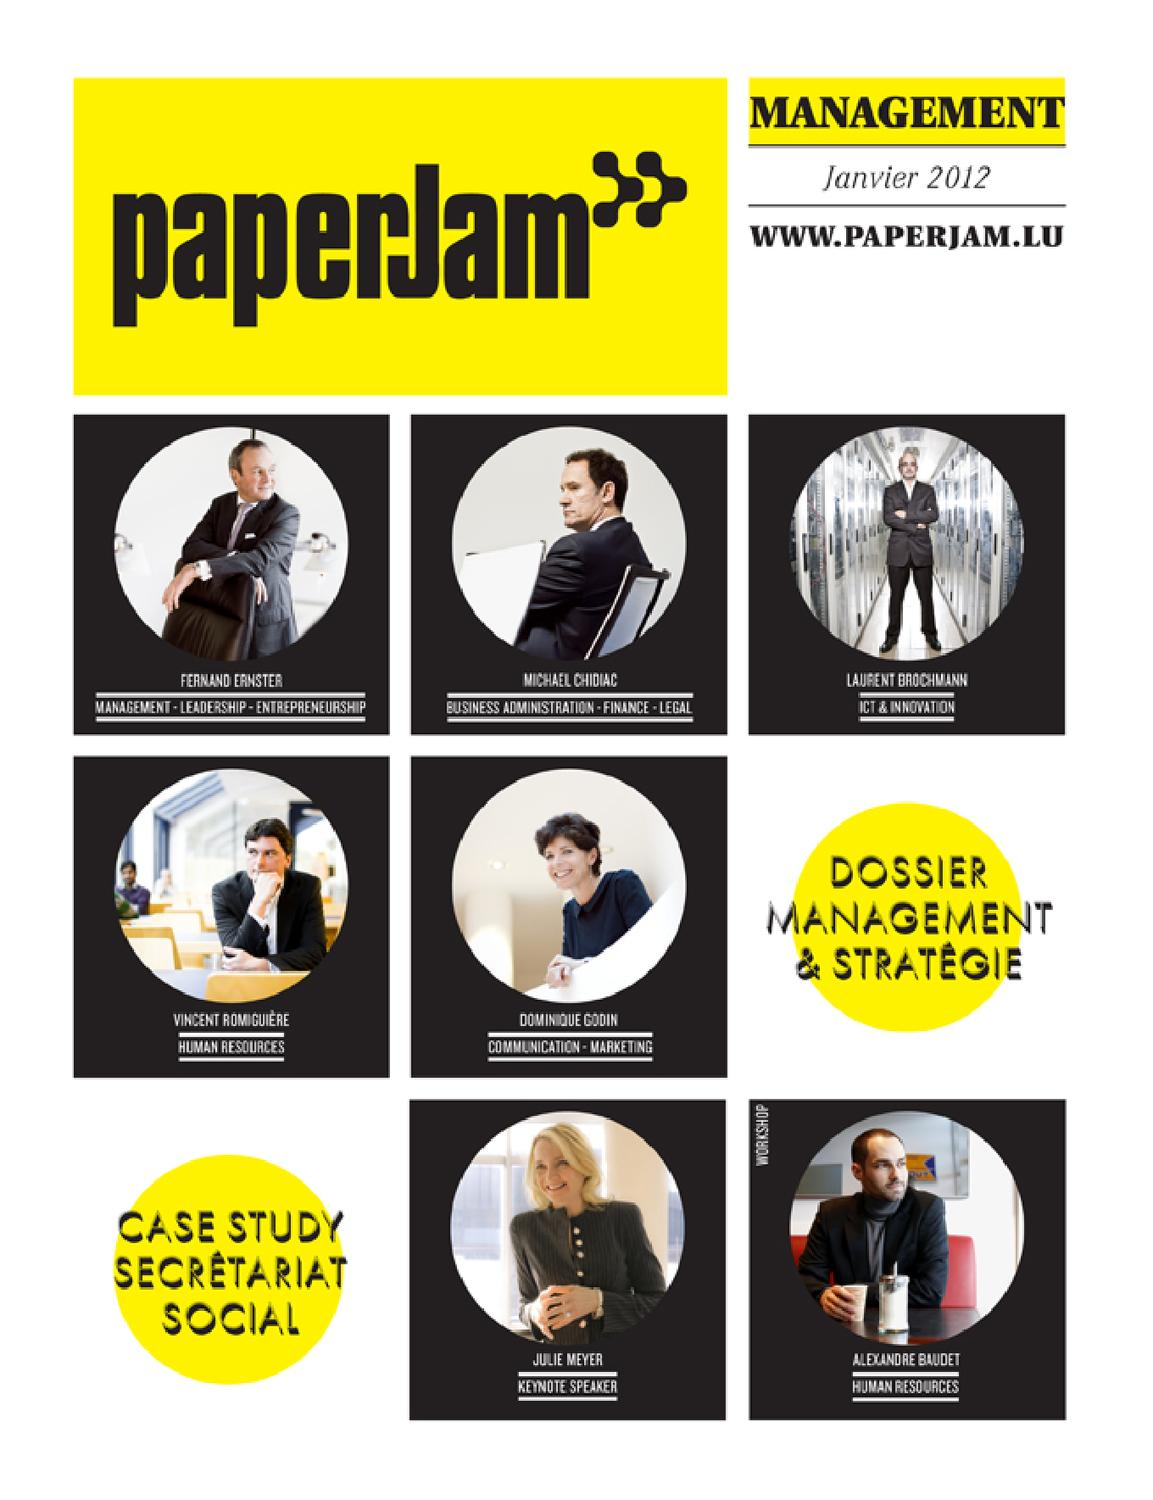 paperJam management janvier 2012 by Maison Moderne - issuu 39f7c688aa18